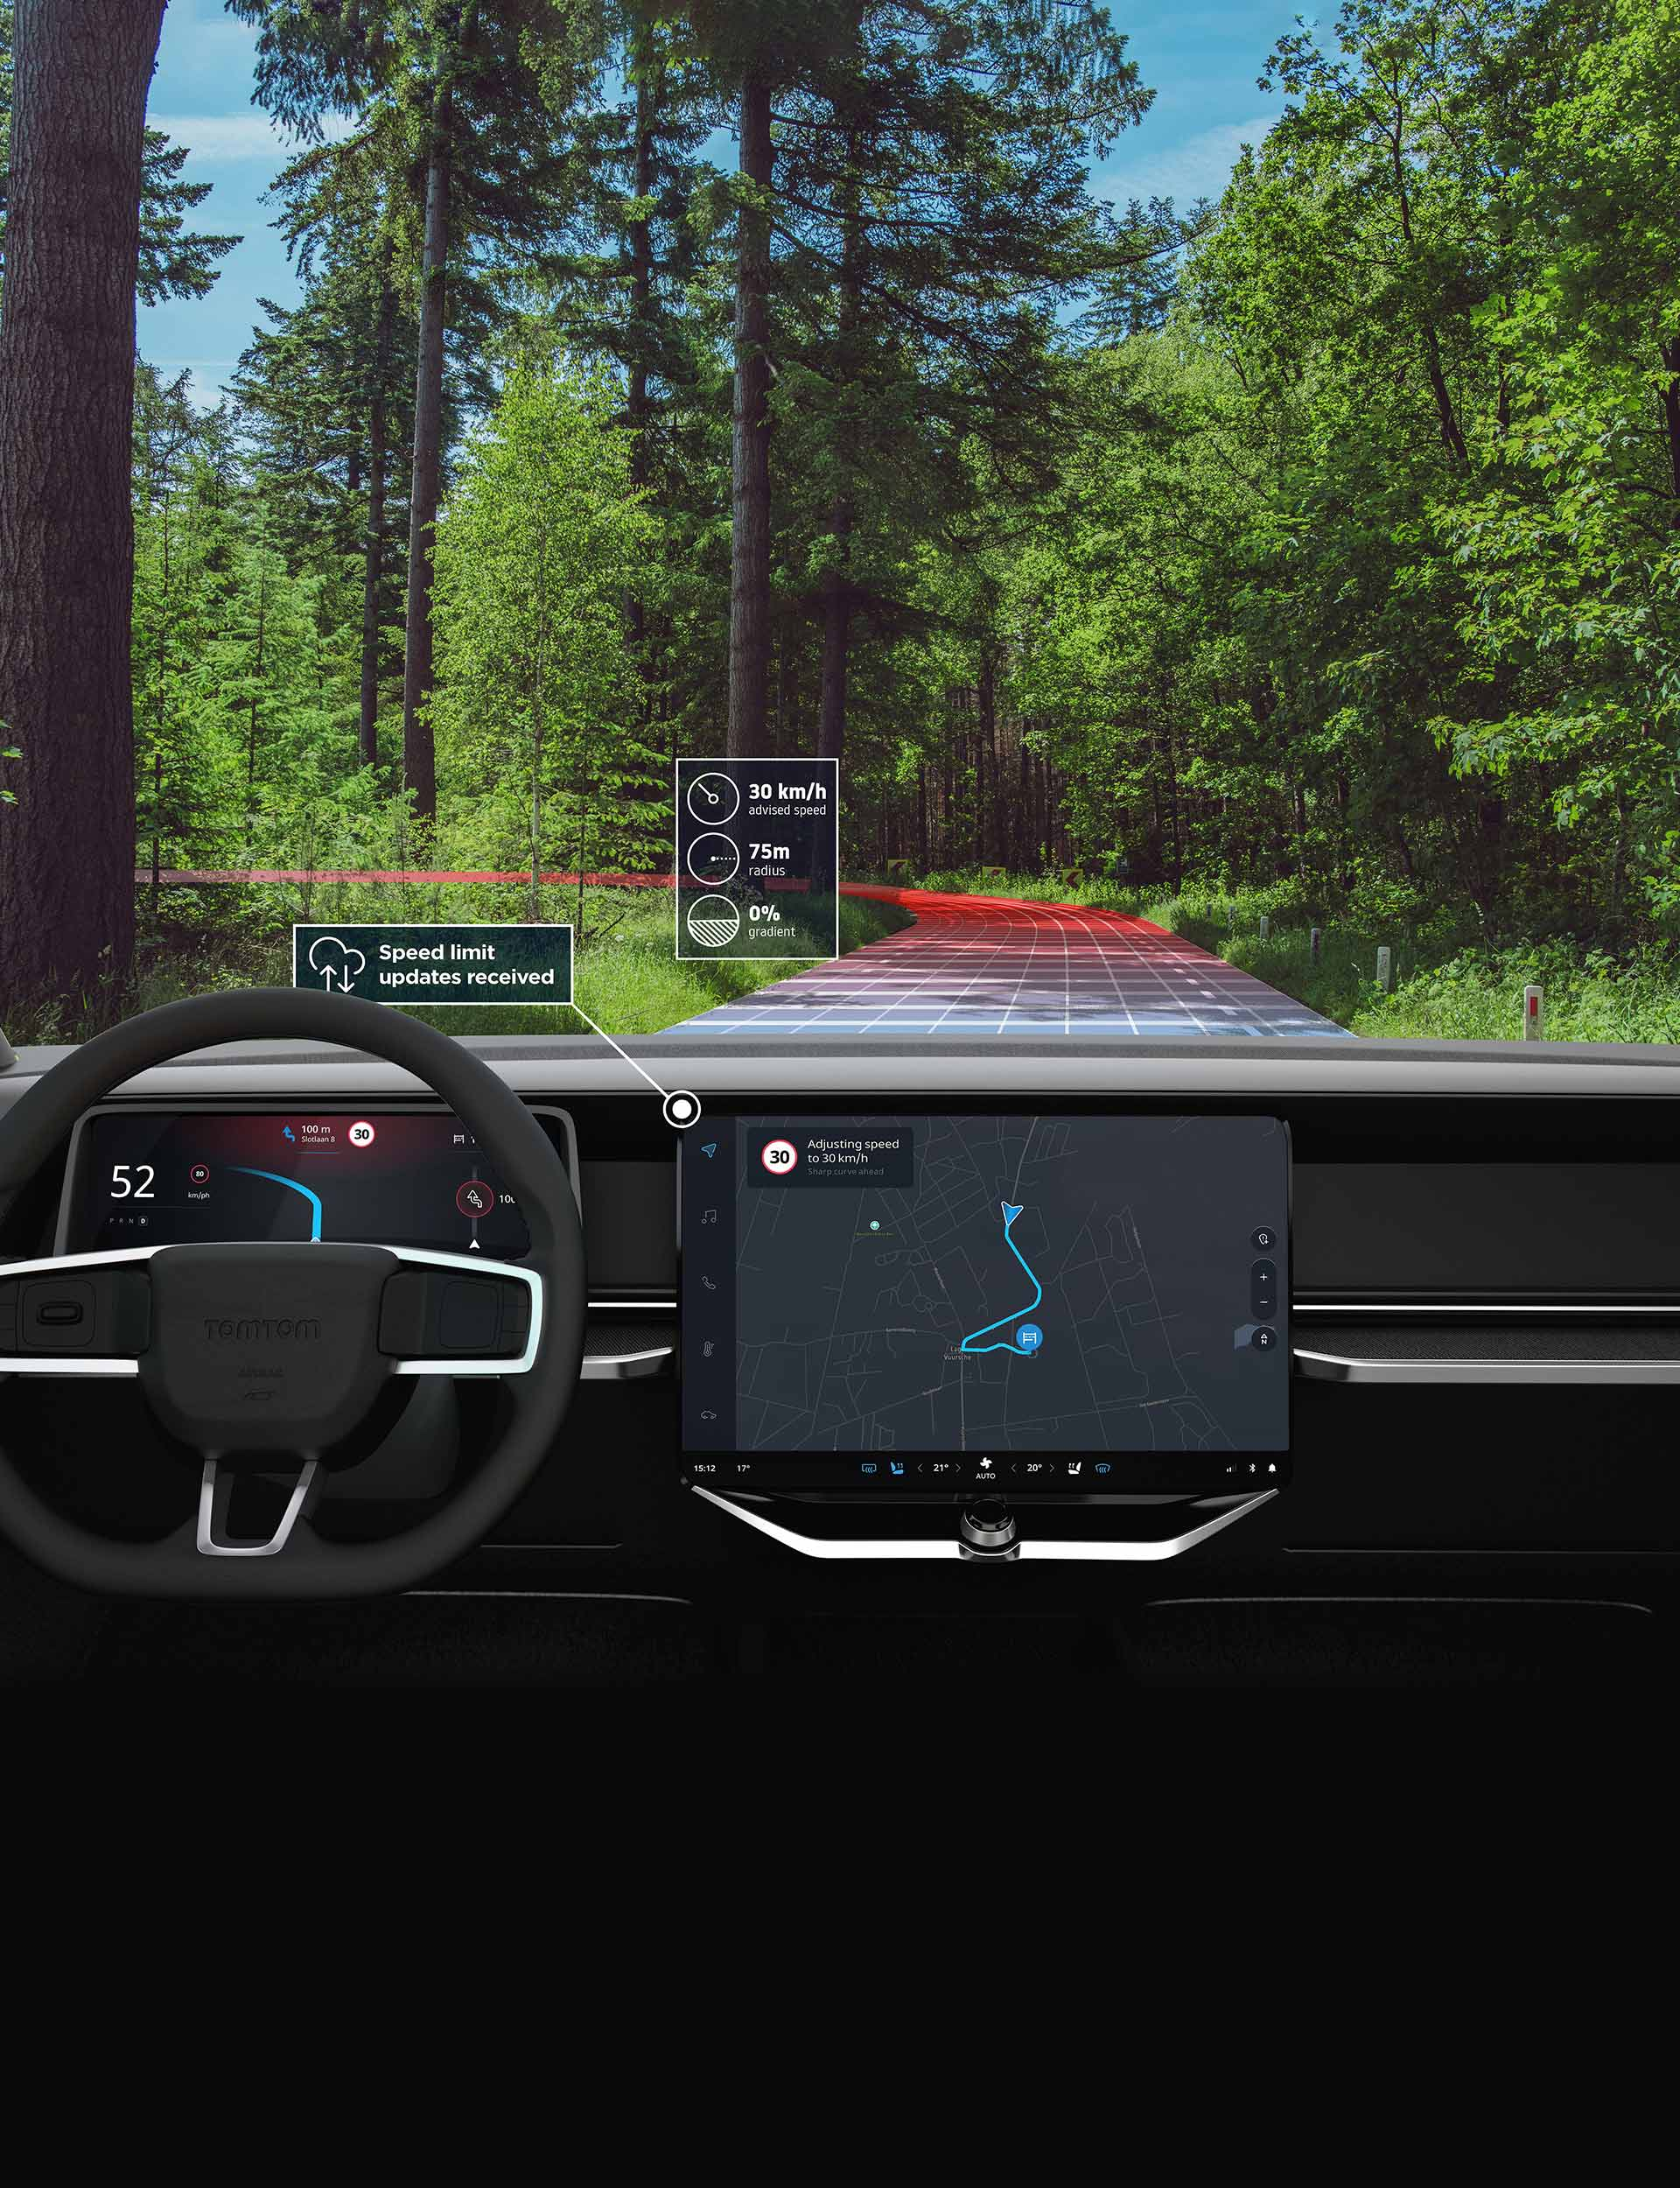 Introducing TomTom Virtual Horizon: the all-in-one ADAS solution for all vehicles